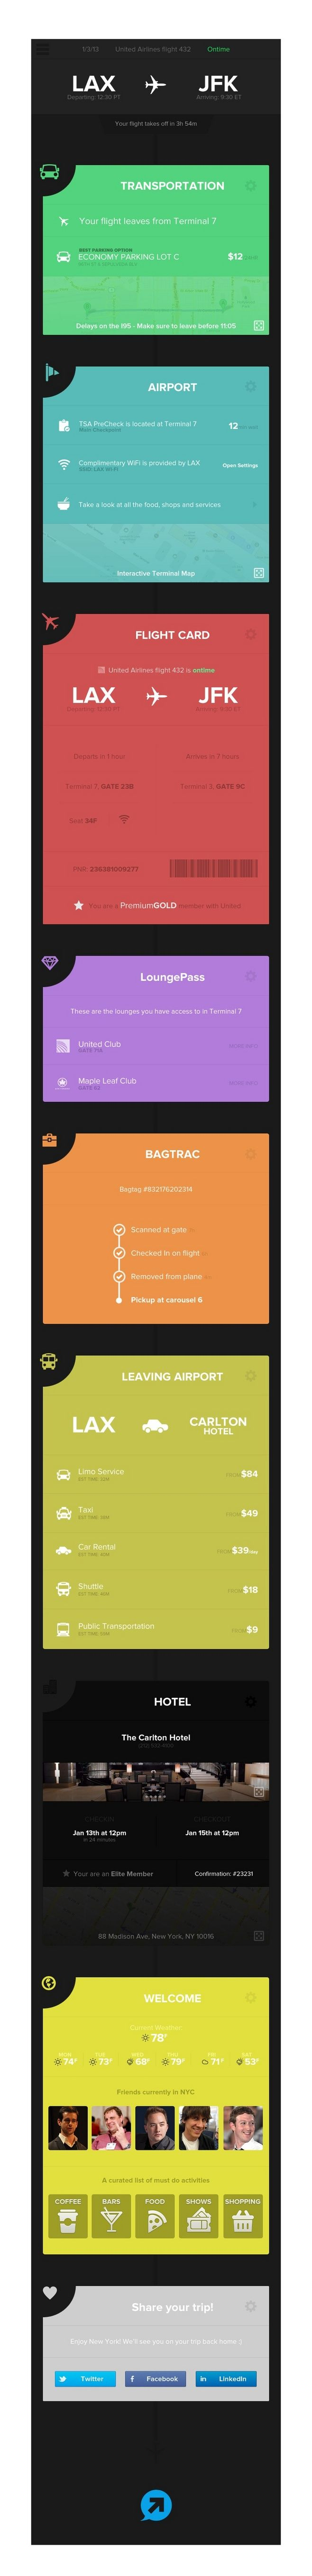 Flight application interface design flat flat design ...